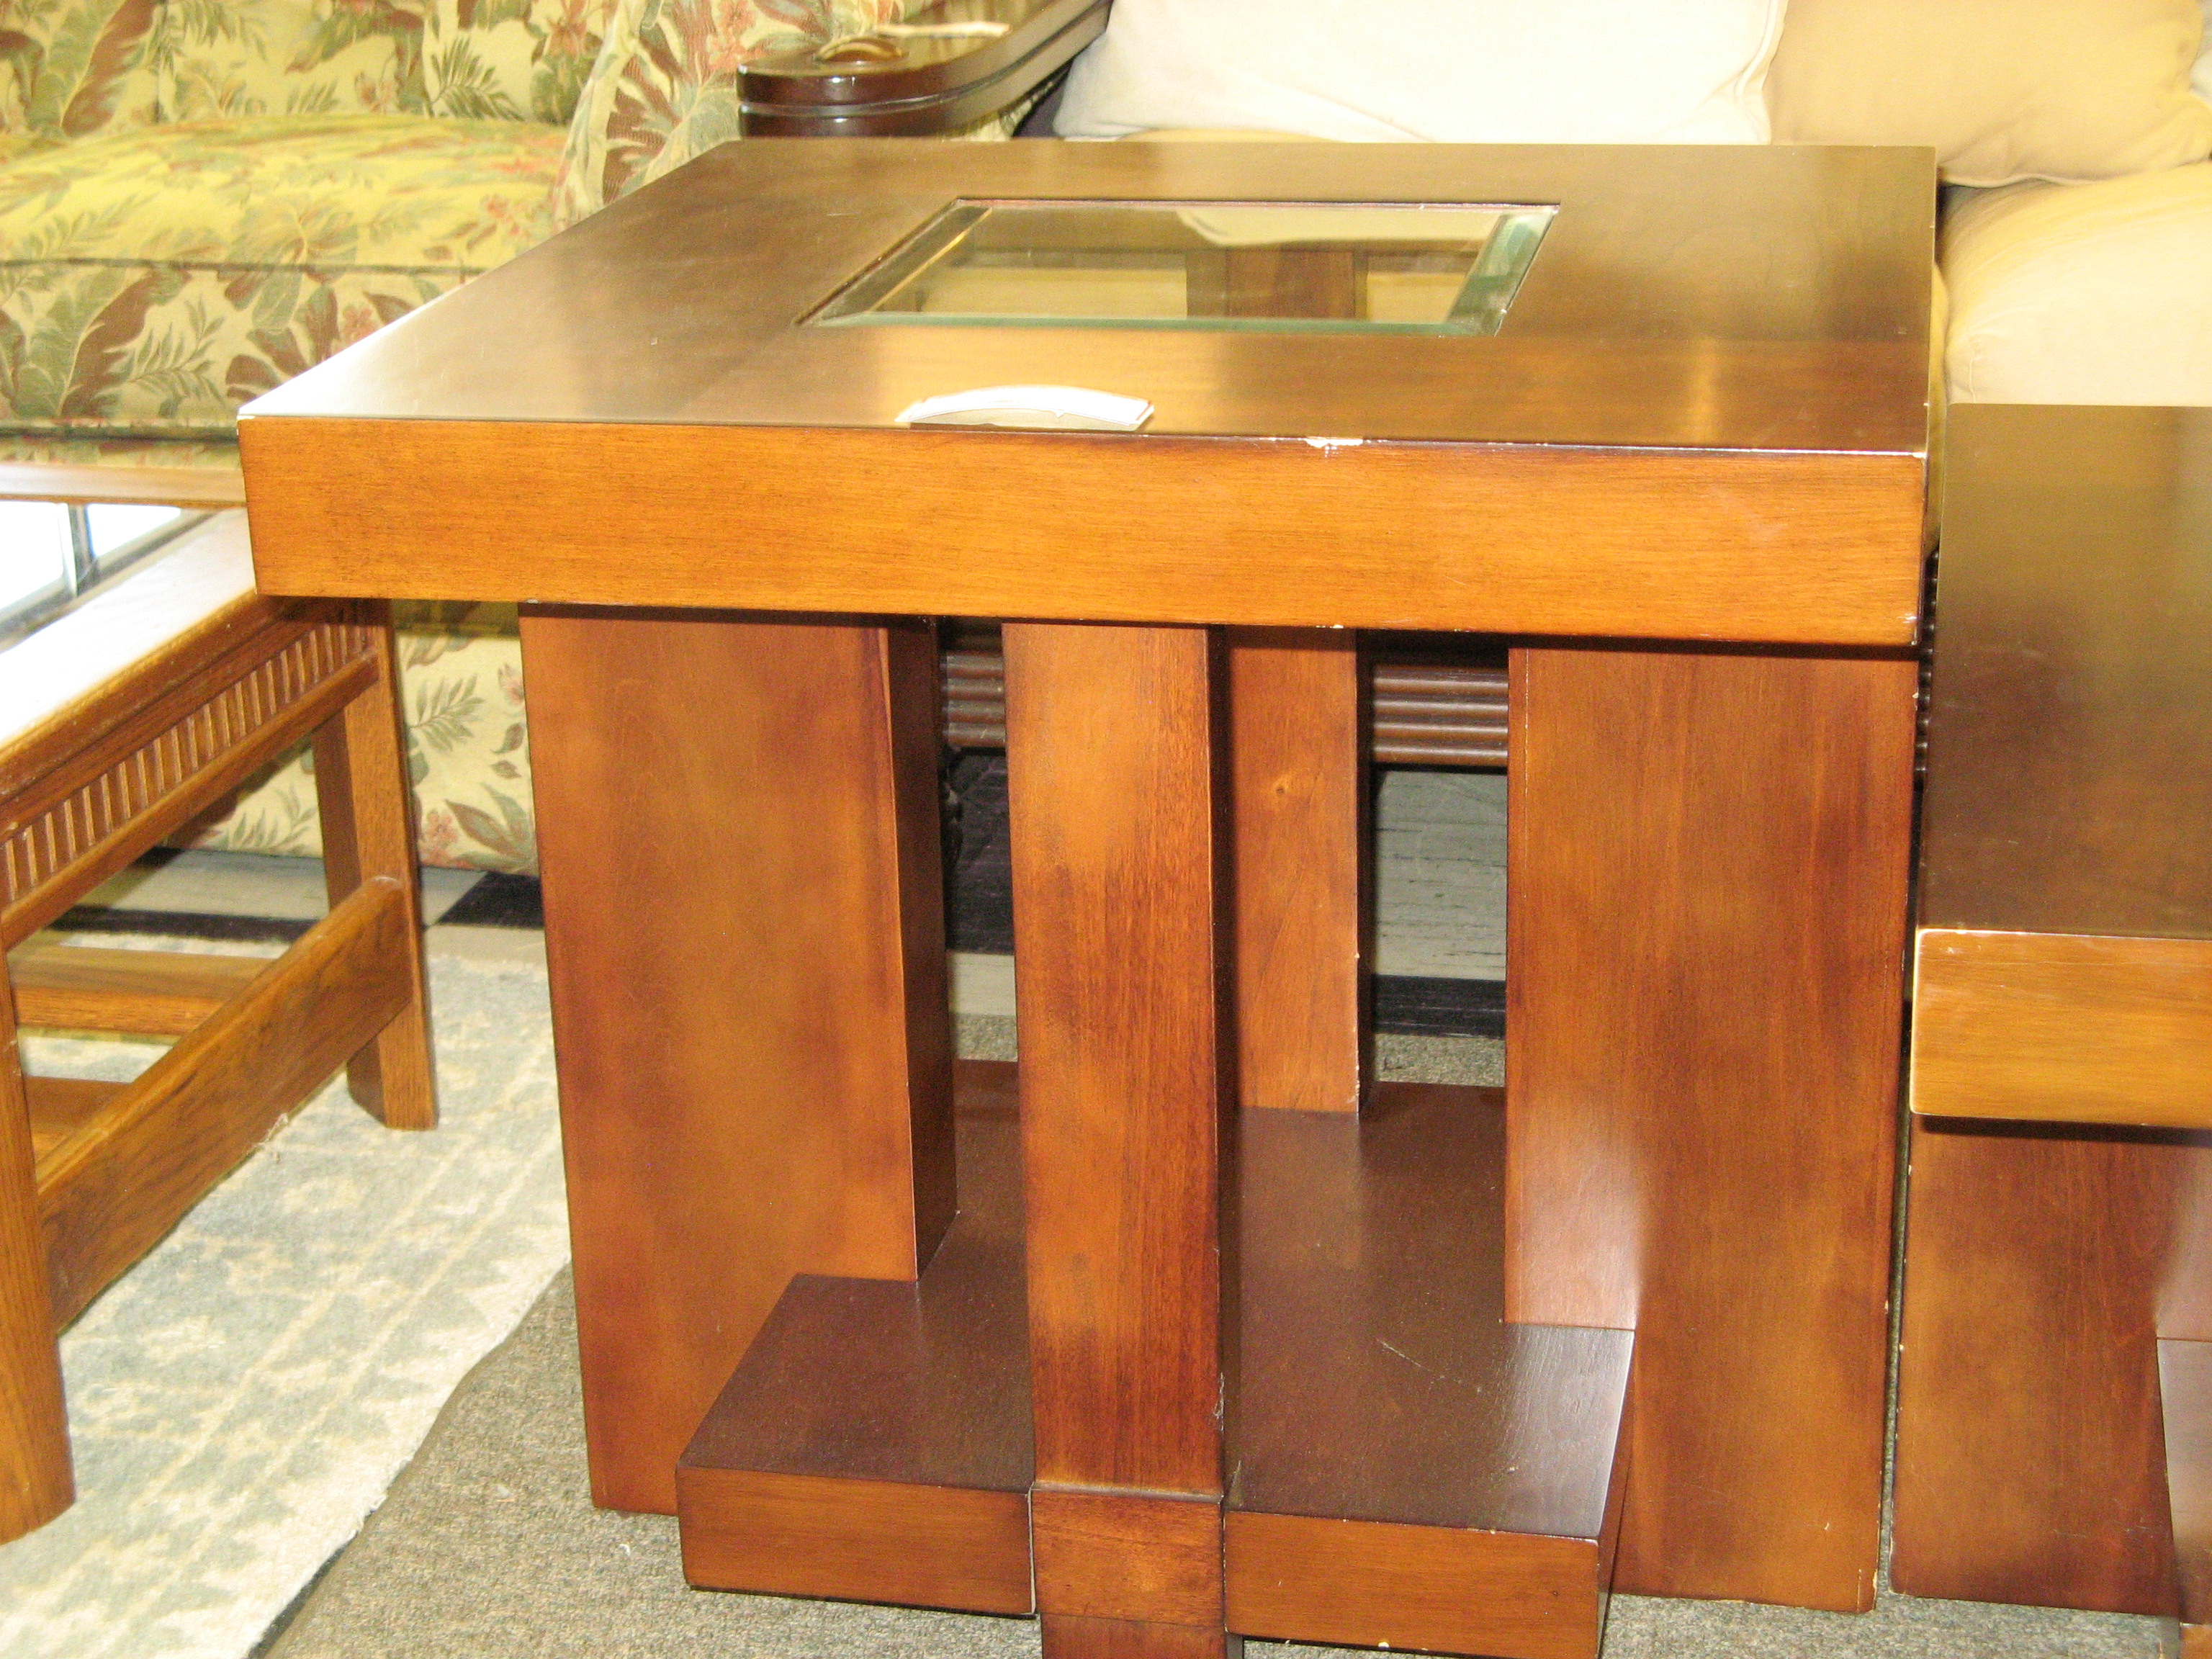 End Table with Beveled Glass Insert